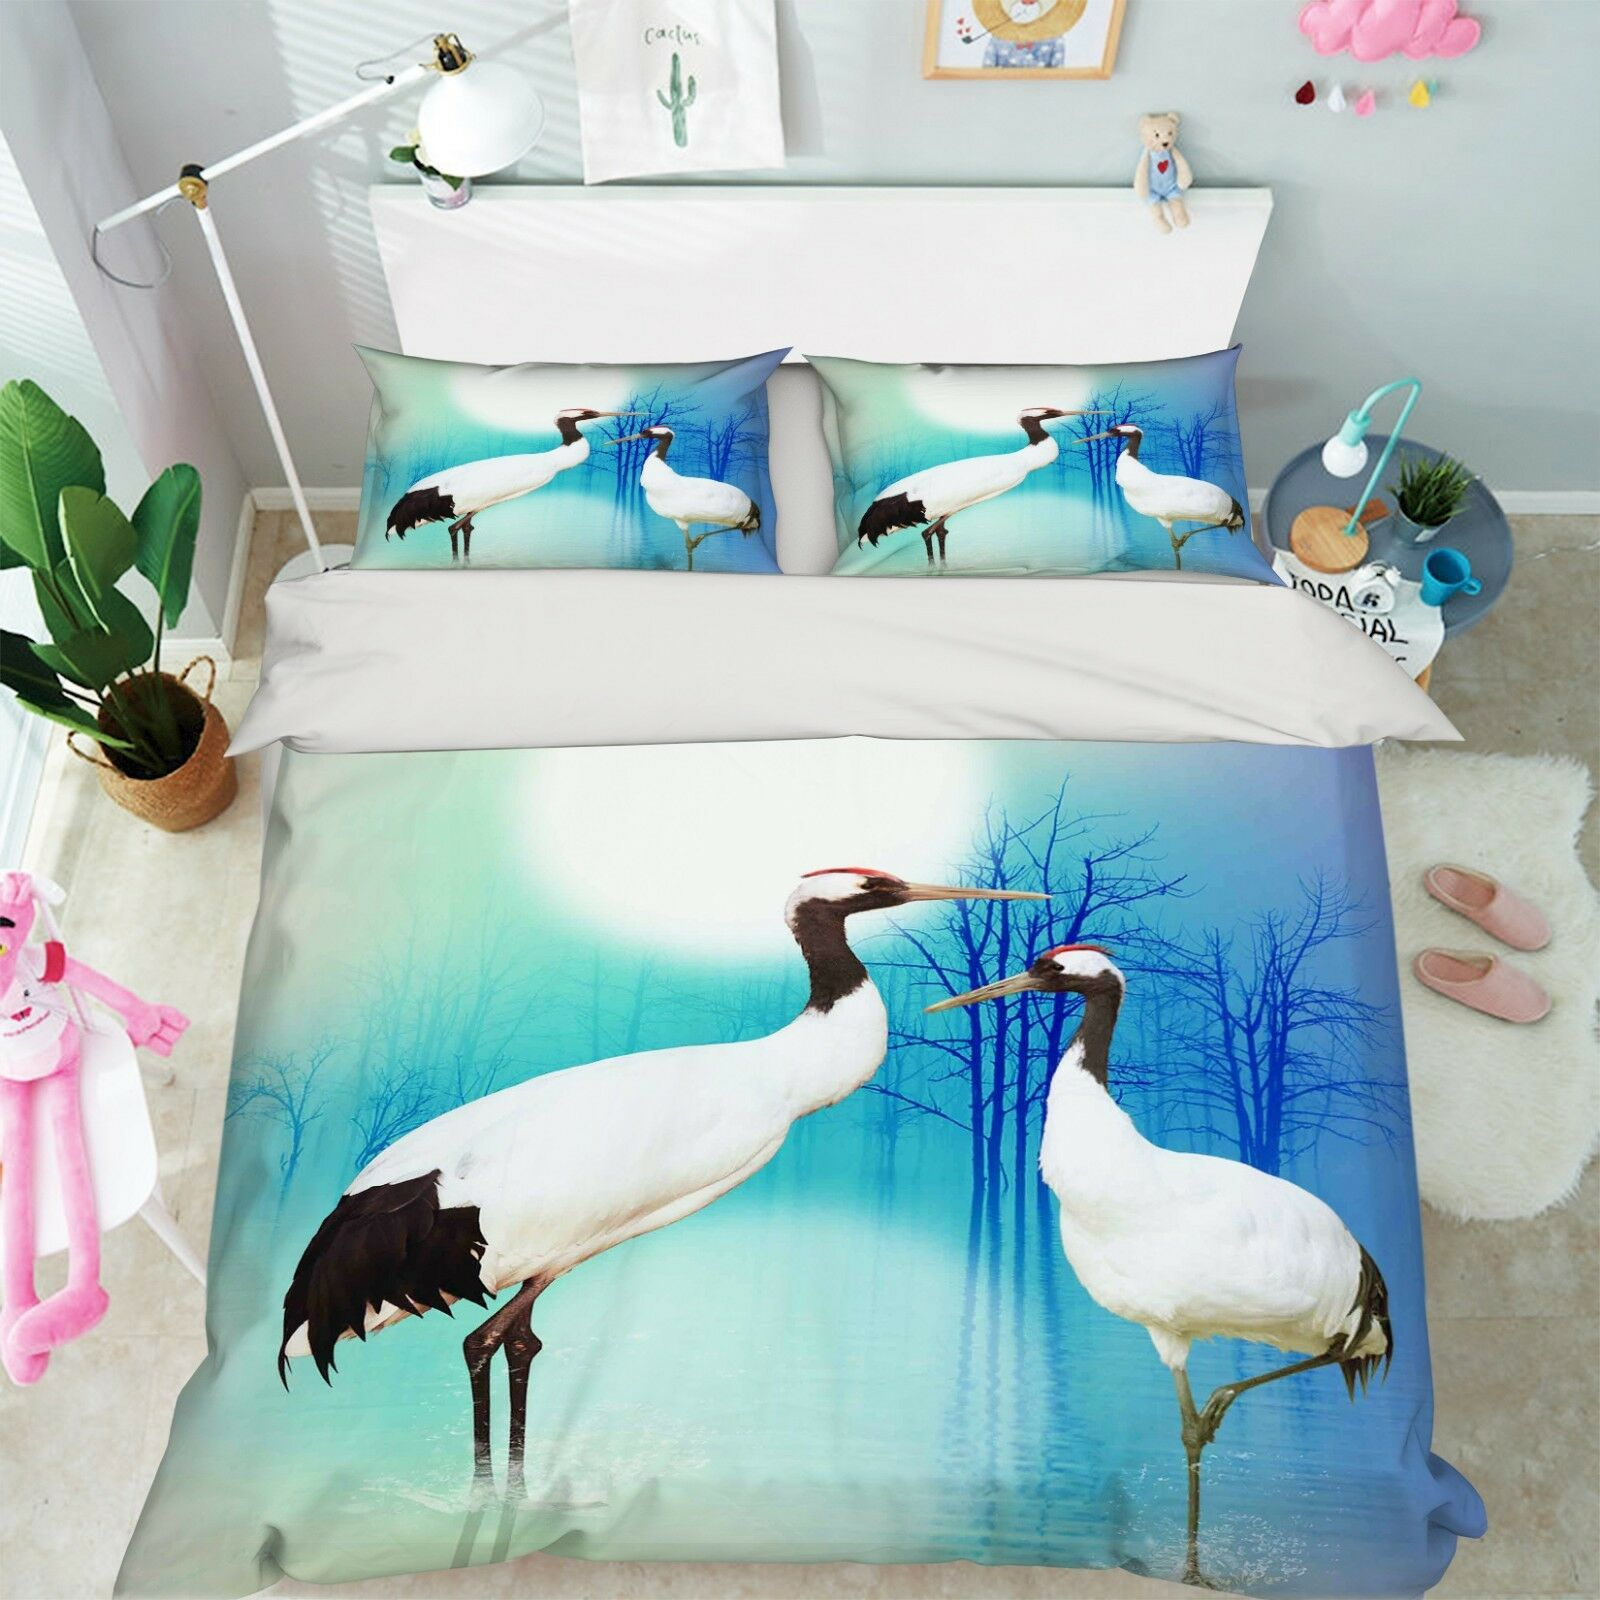 3D Moon Heron 76 Bed Pillowcases Quilt Duvet Cover Set Single King UK Summer